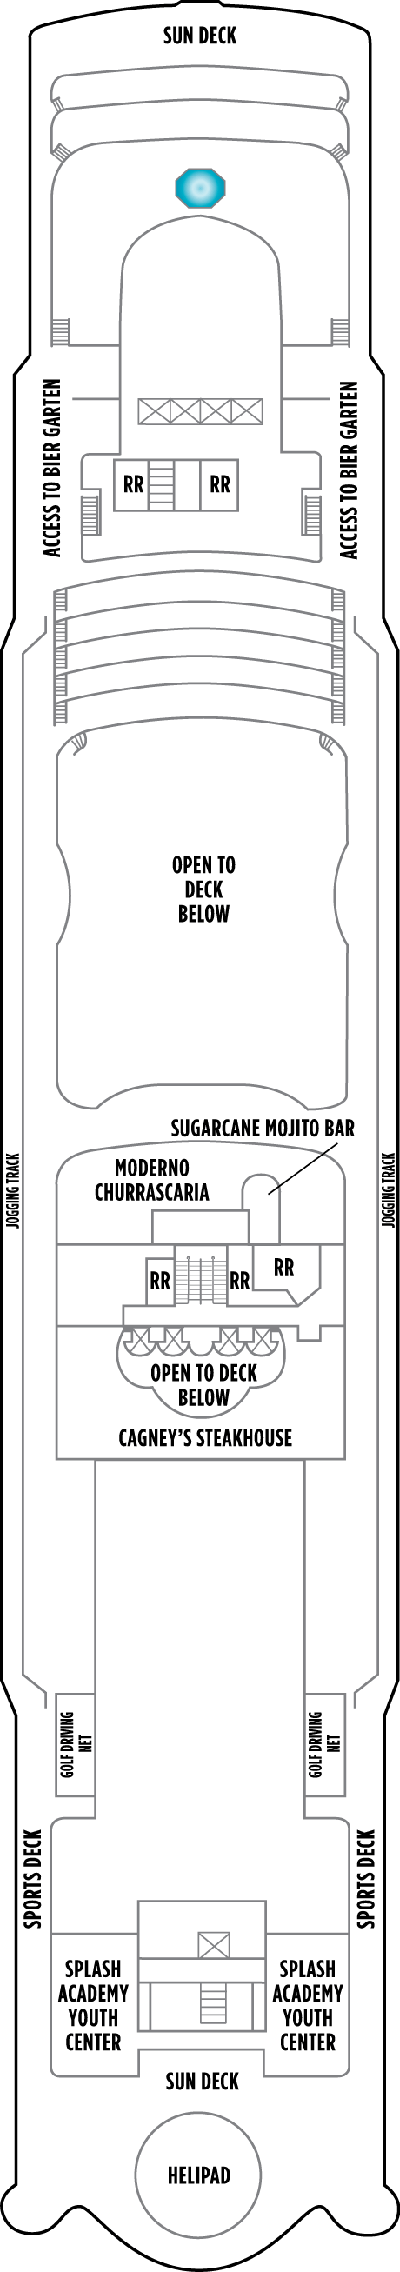 Norwegian Star Deck 13 layout